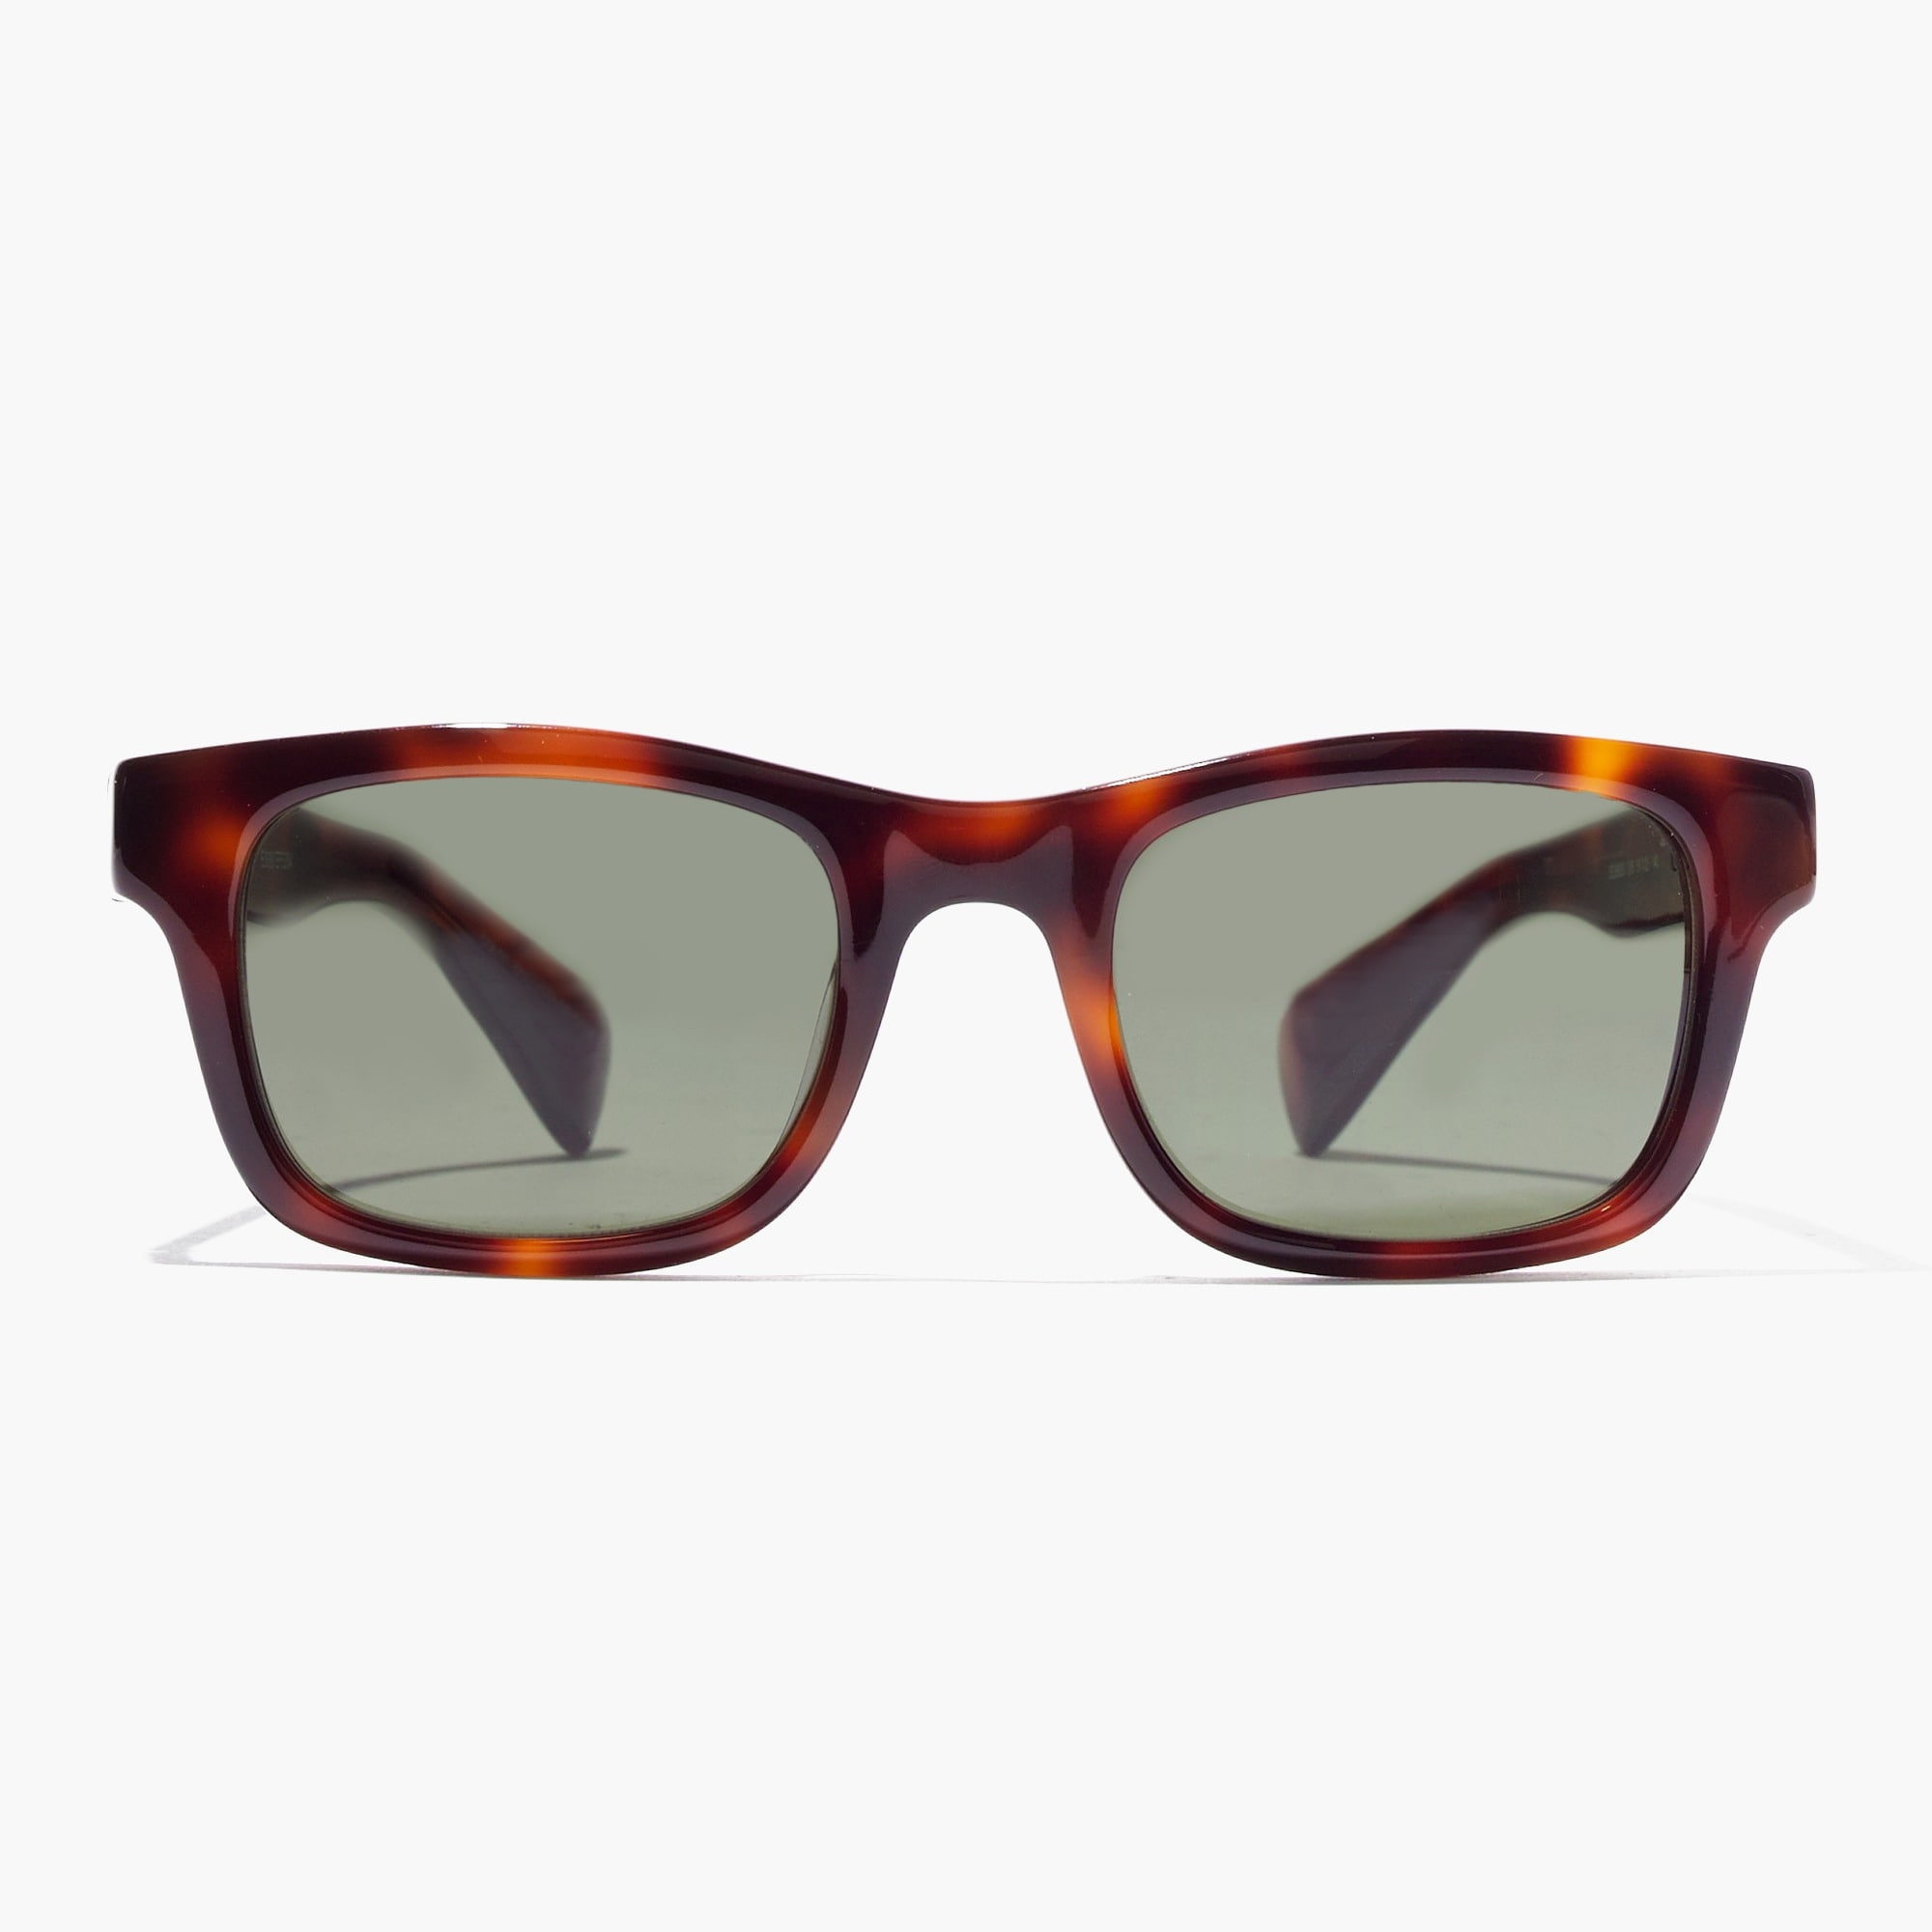 irving sunglasses : men's sunglasses